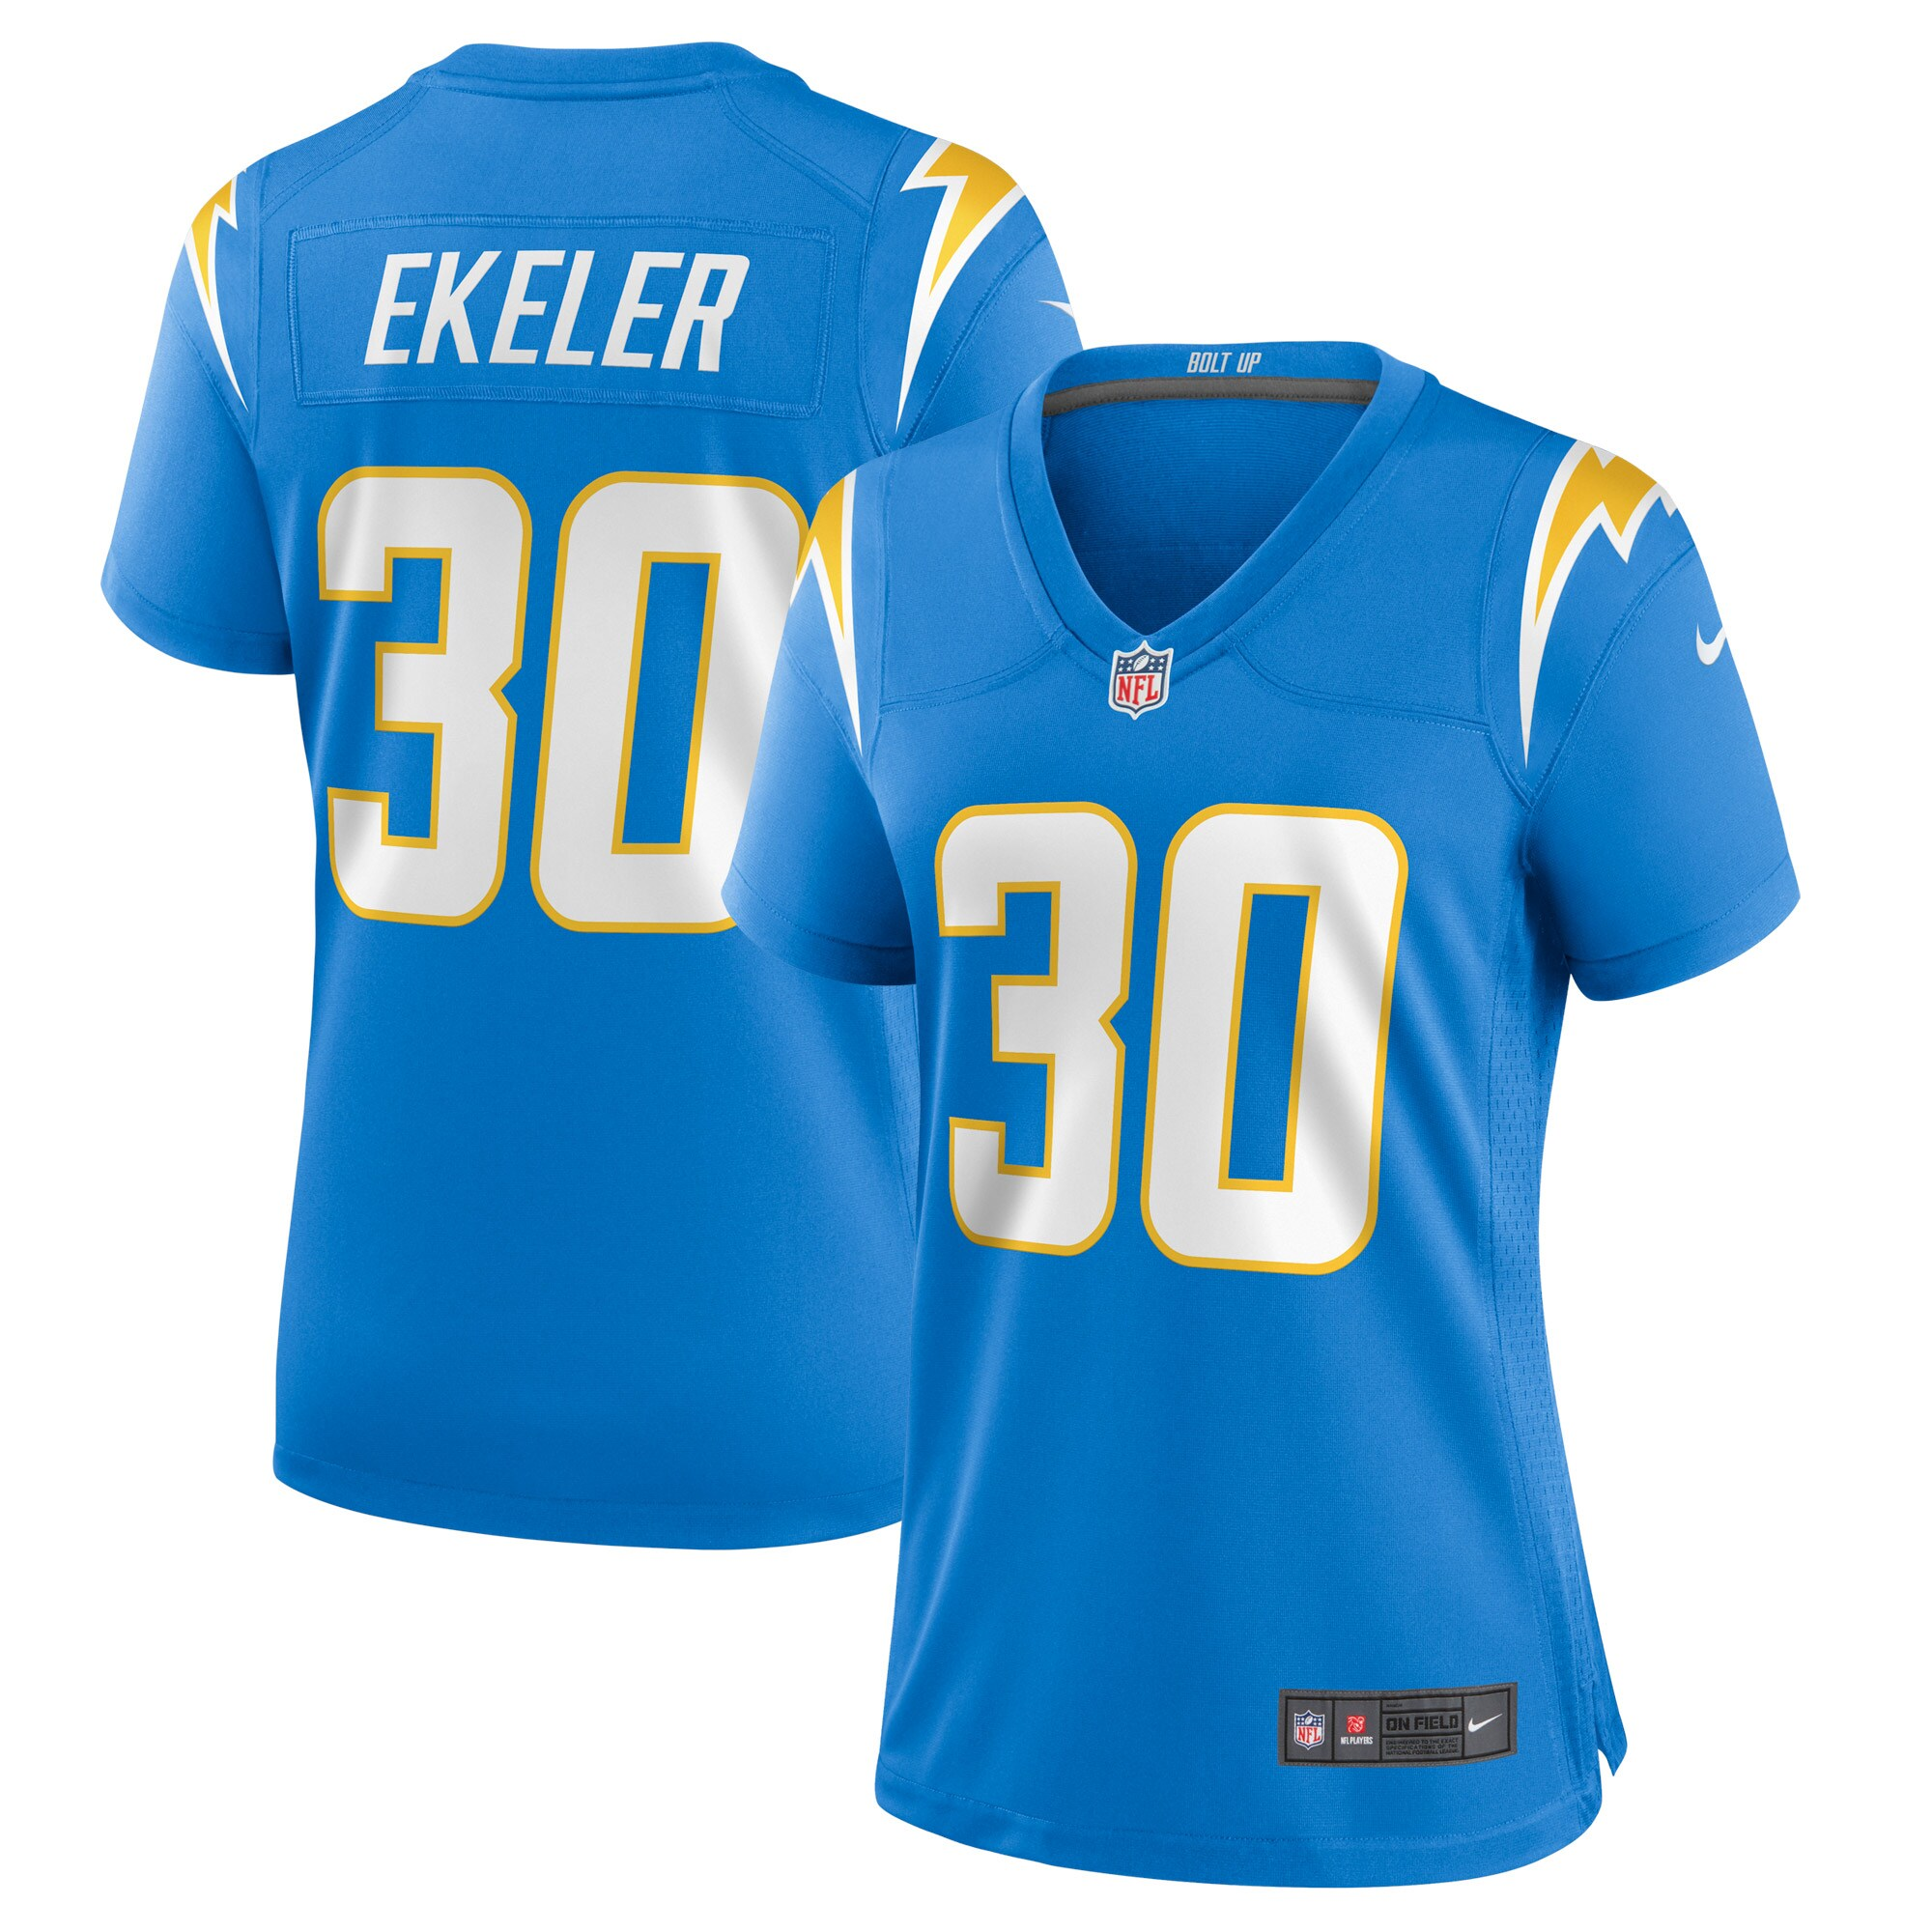 Austin Ekeler Los Angeles Chargers Nike Women's Game Jersey - Powder Blue